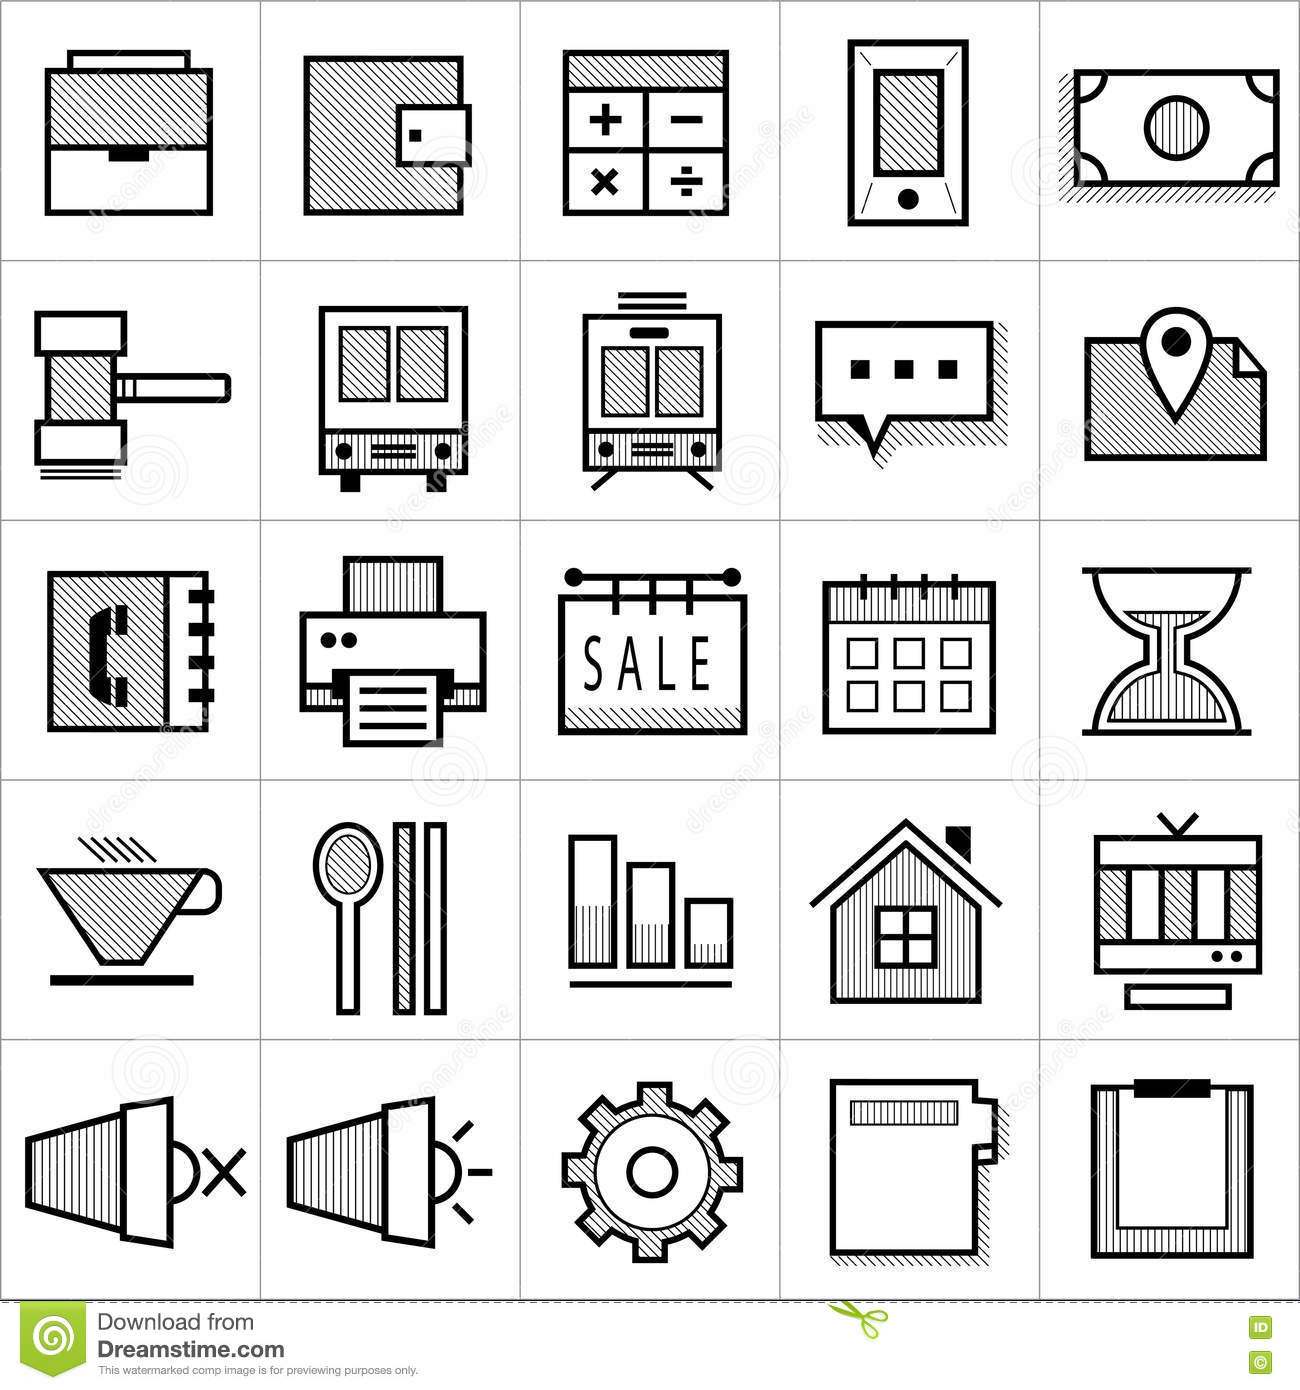 Stripe business icons 001 stock vector  Illustration of calculator